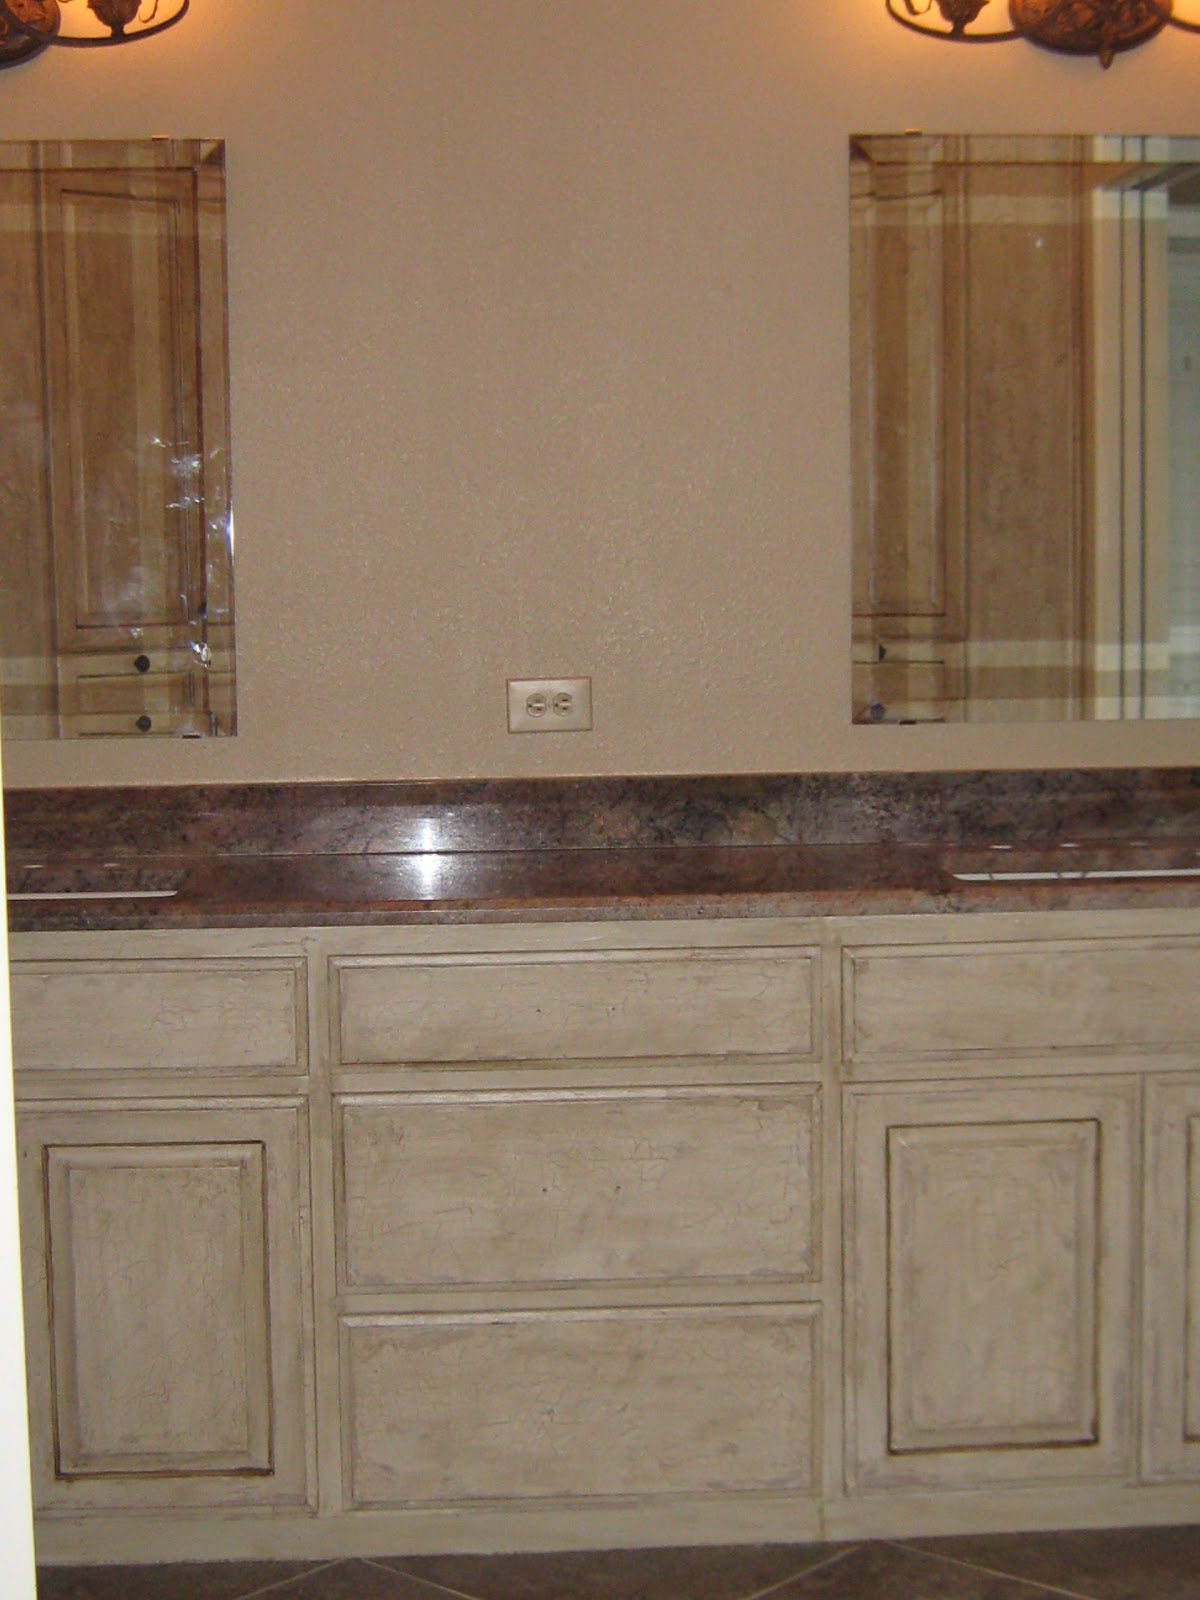 distressed faux finish on bathroom cabinets tutorial on painting and